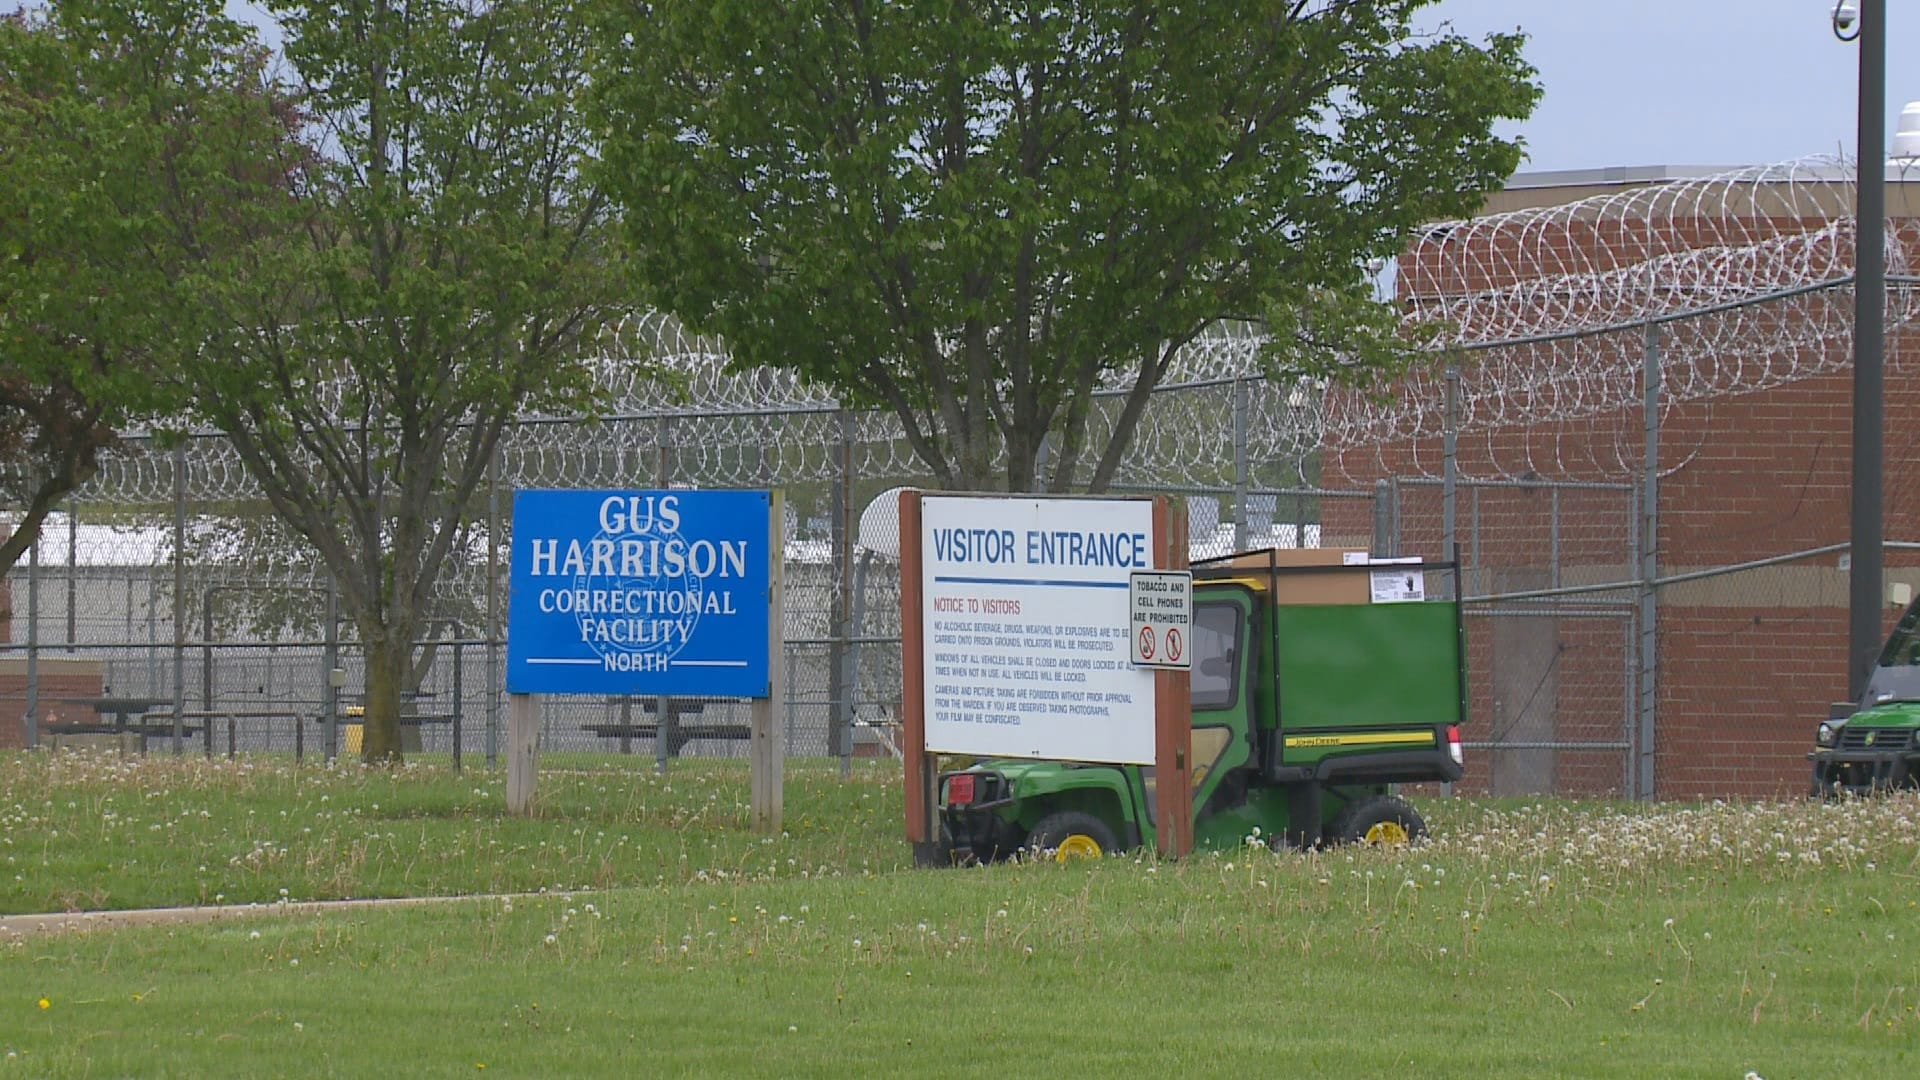 Image of commercial chain link fencing, barbed wire, and security lighting at Gus Harrison Correctional Facility